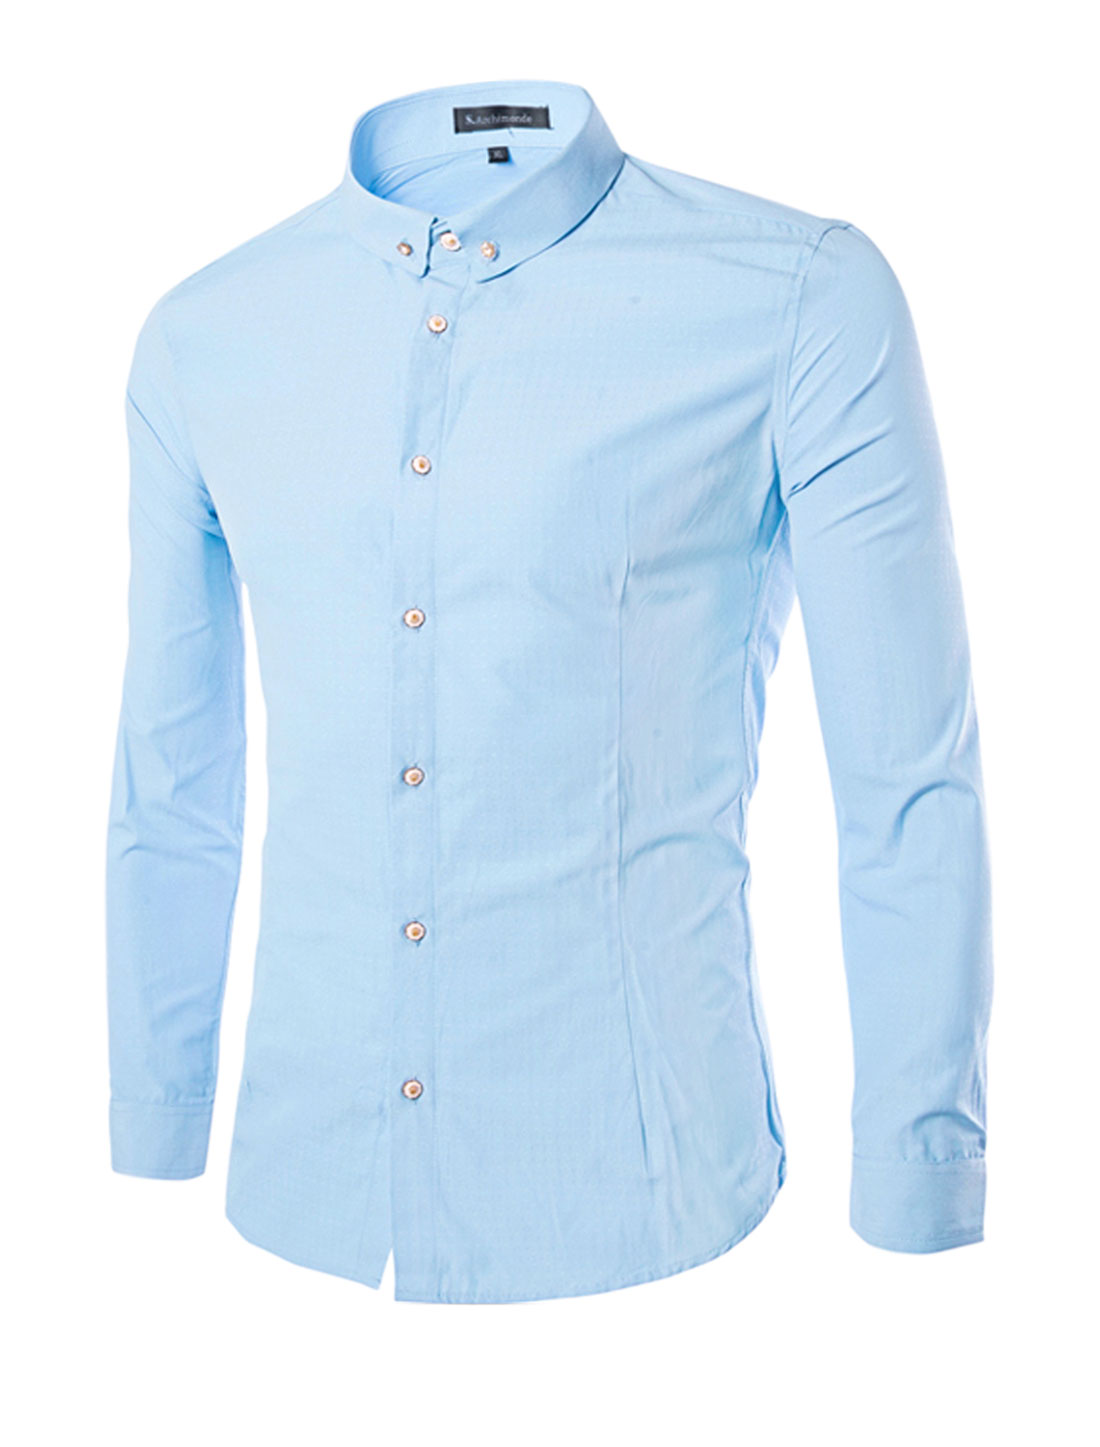 Men Long Sleeves Single Breasted Slim Fit Leisure Stitching Shirt Blue S